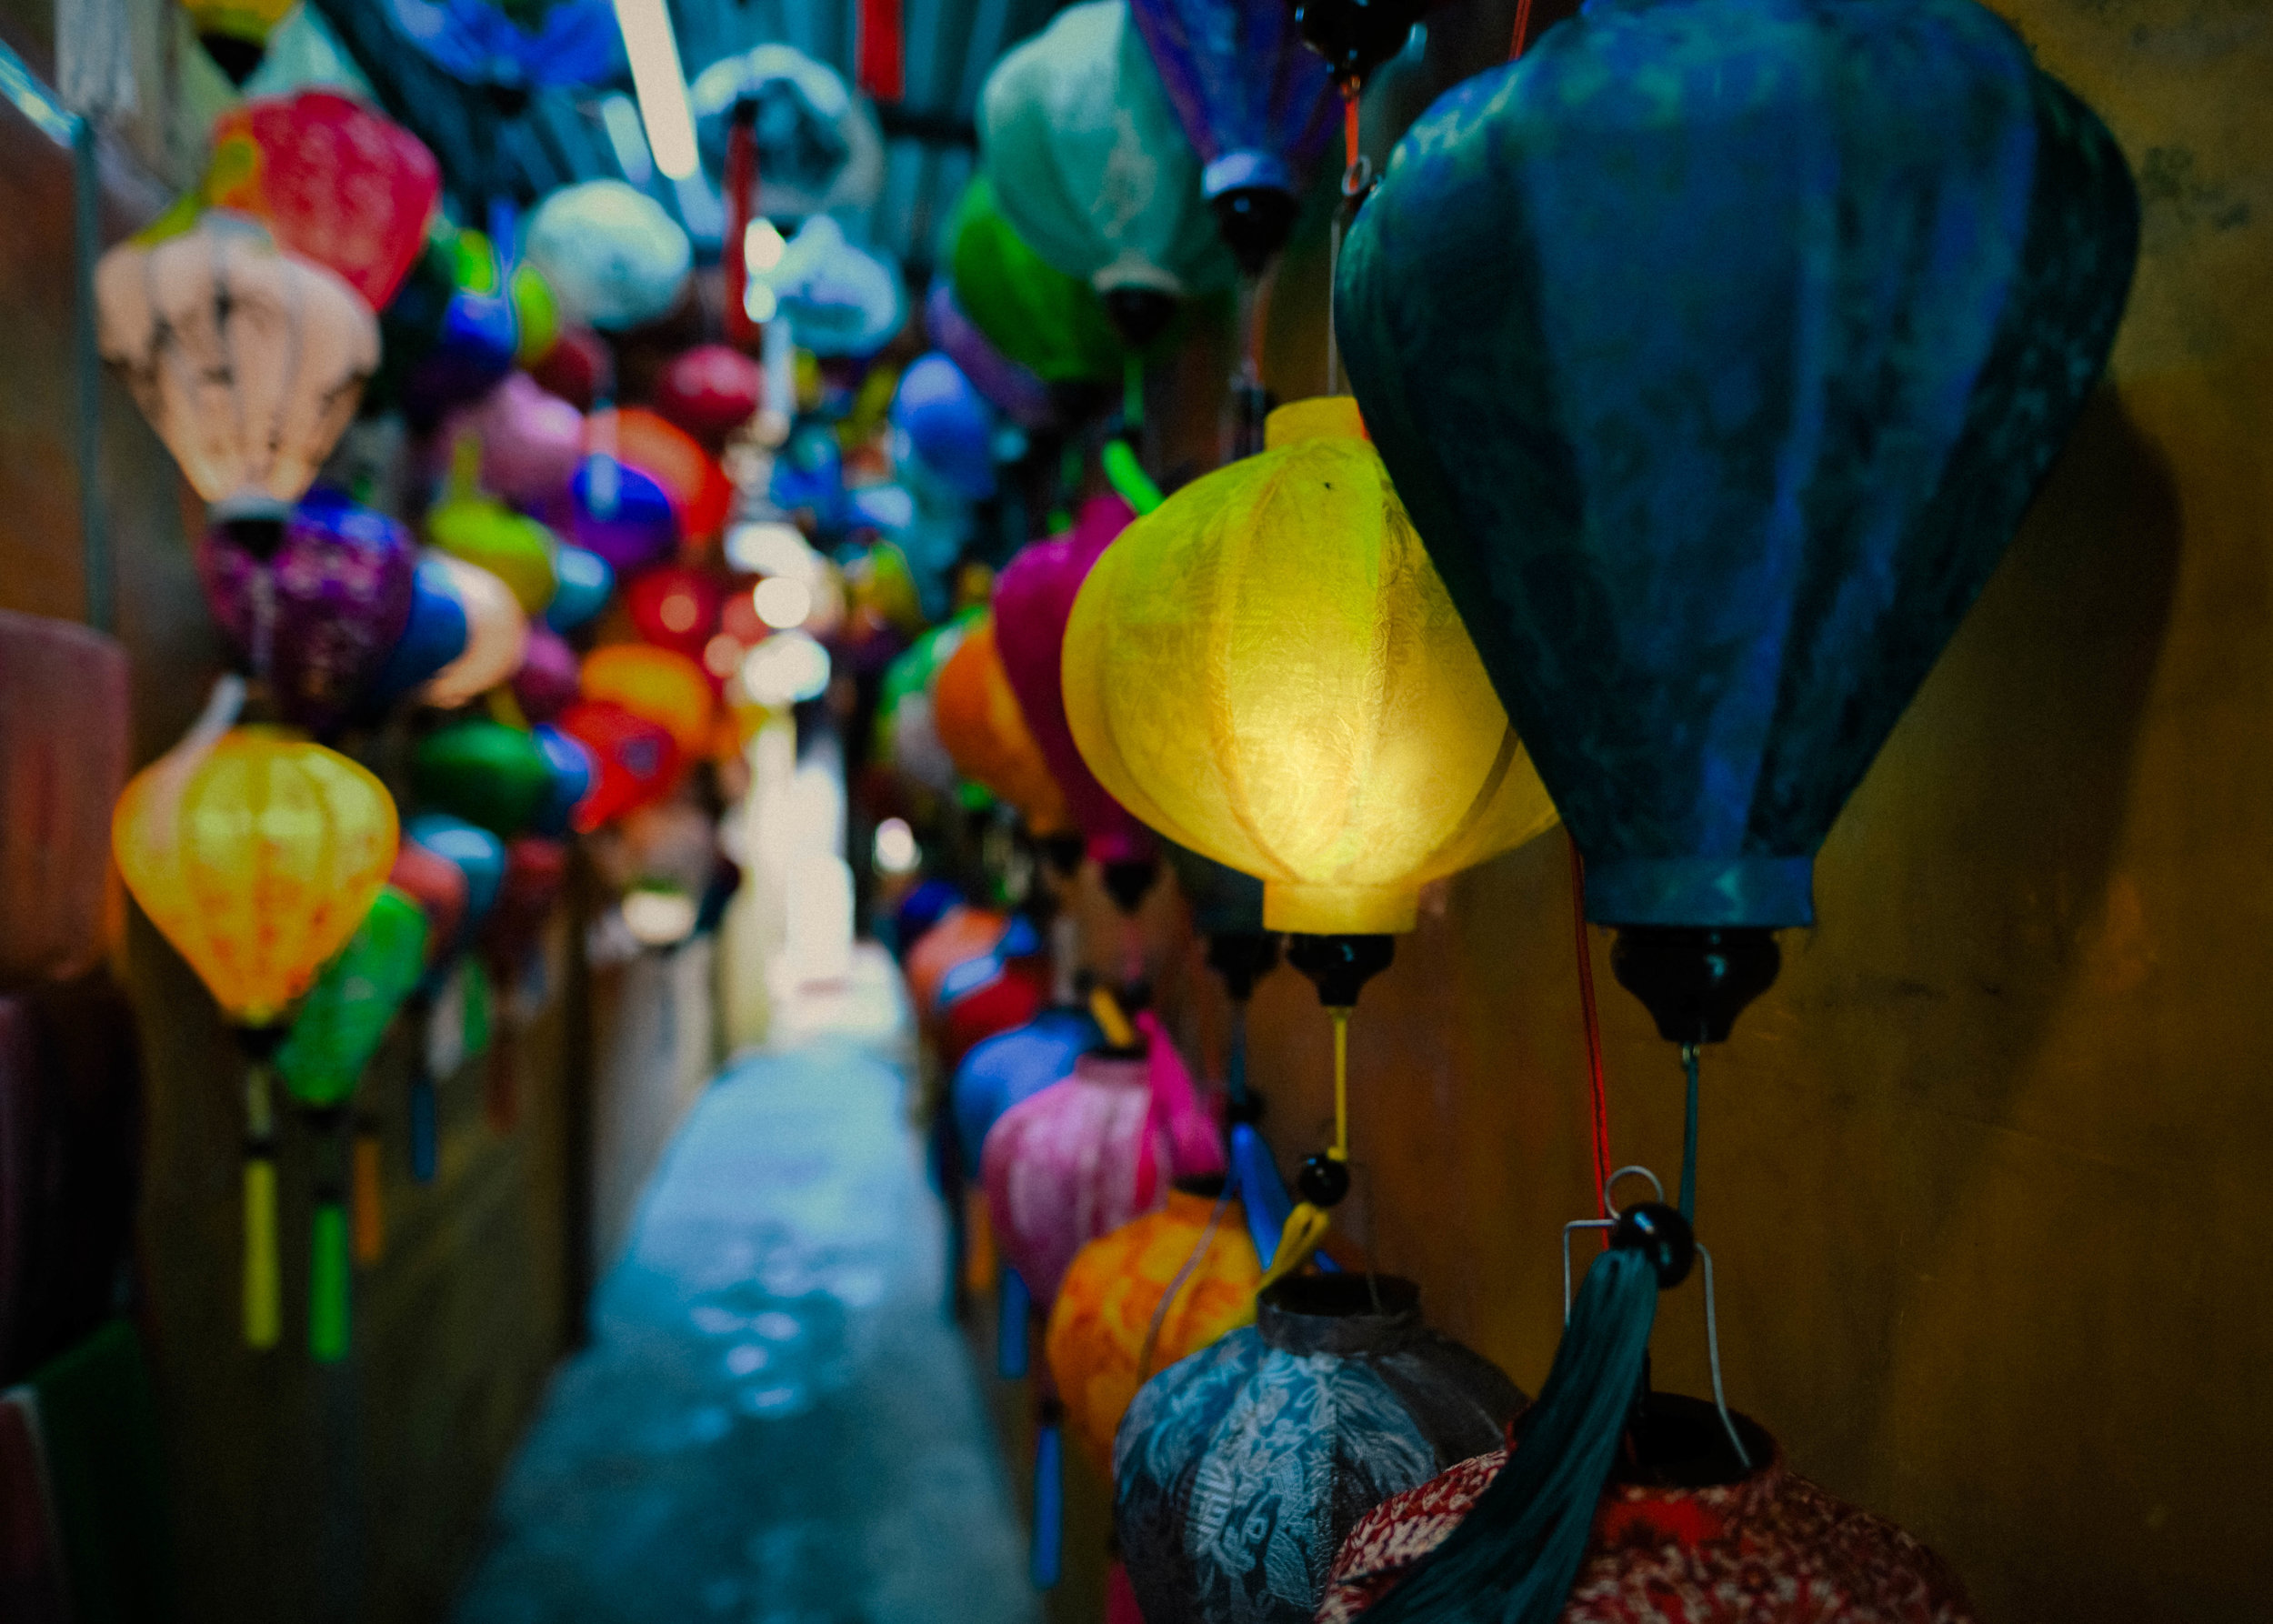 Lit lantern in an alleyway in Hoi An